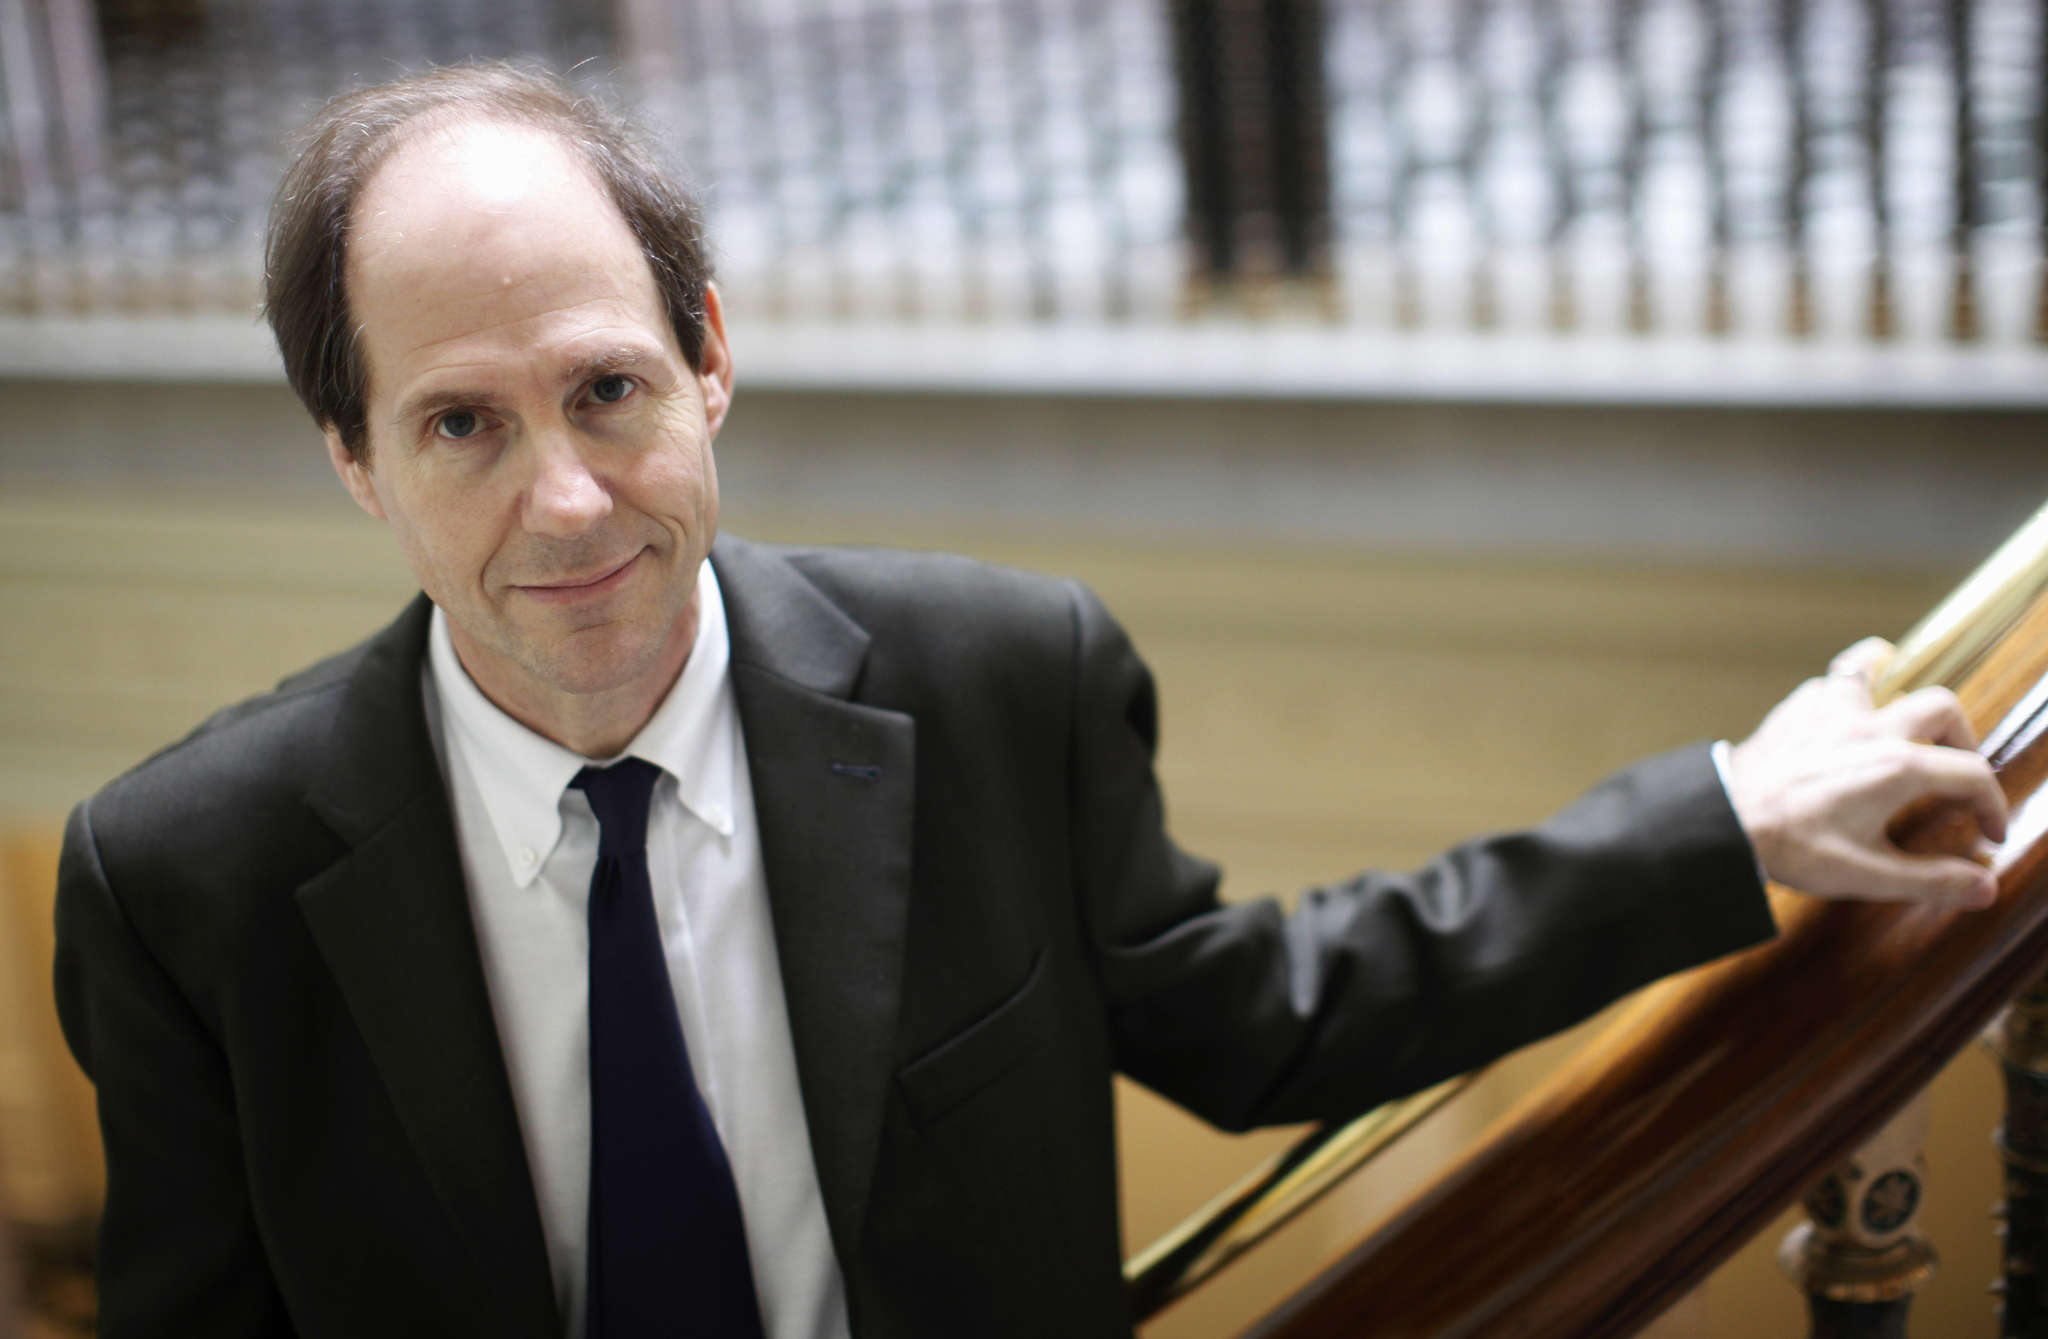 Harvard Law professor Cass Sunstein argues that exposing early-stage government communication can stop people from saying what they think, reduce honesty, and lead to dangerously bad decisions.